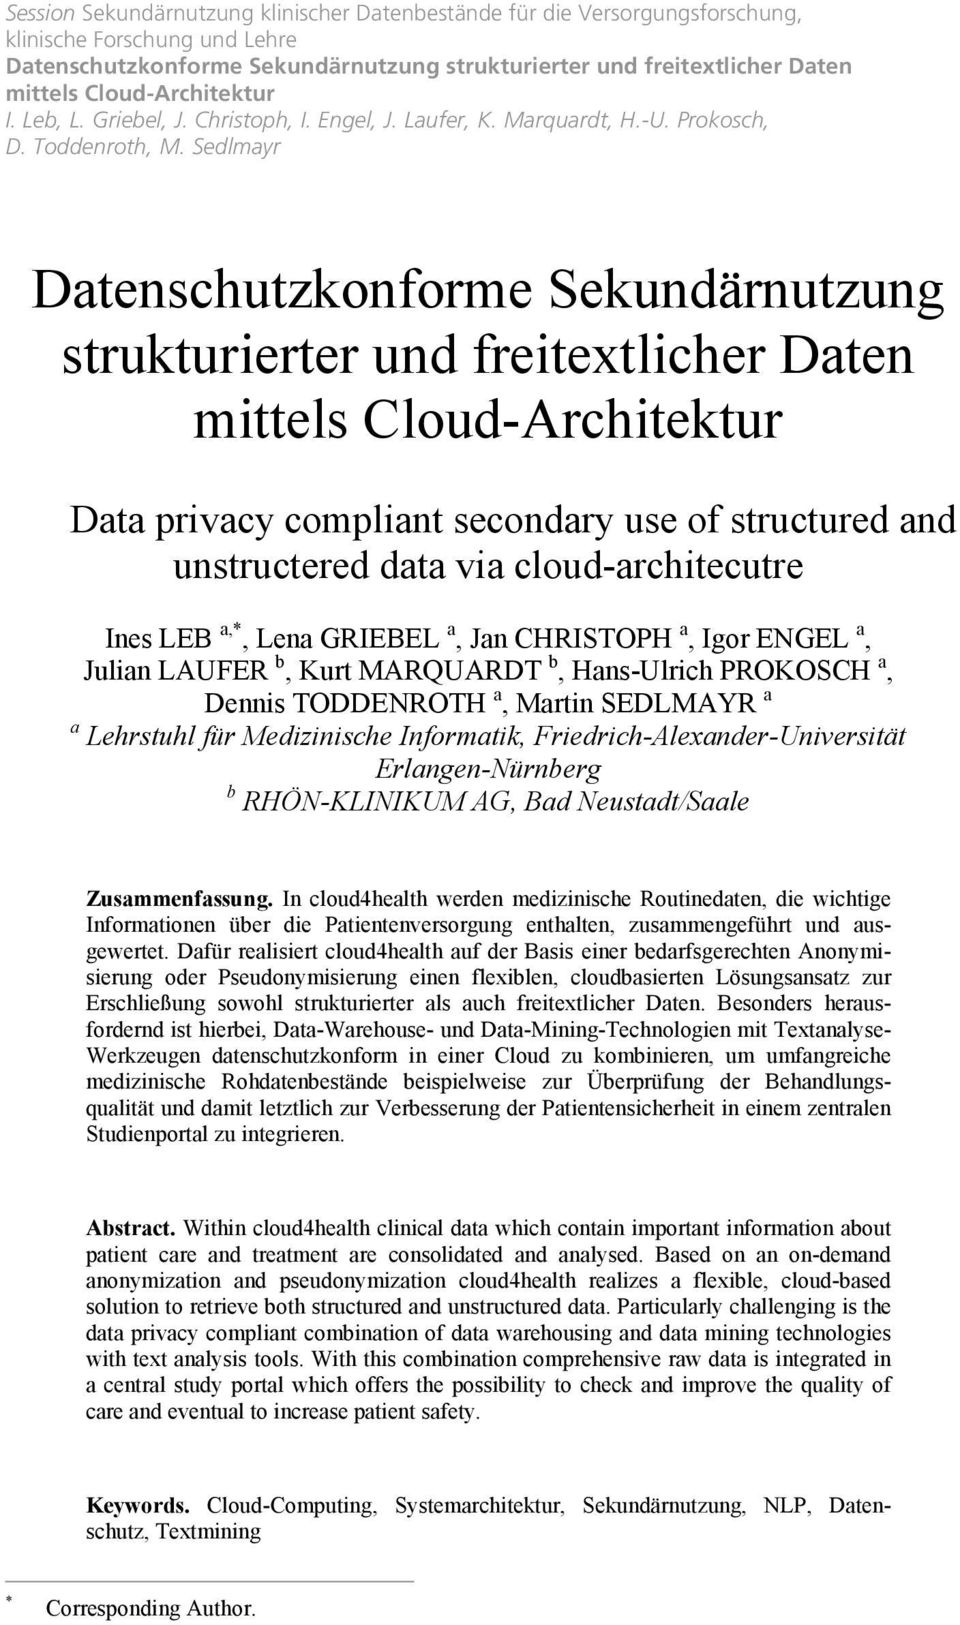 Sedlmayr Datenschutzkonforme Sekundärnutzung strukturierter und freitextlicher Daten Data privacy compliant secondary use of structured and unstructered data via cloud-architecutre Ines LEB a,*, Lena